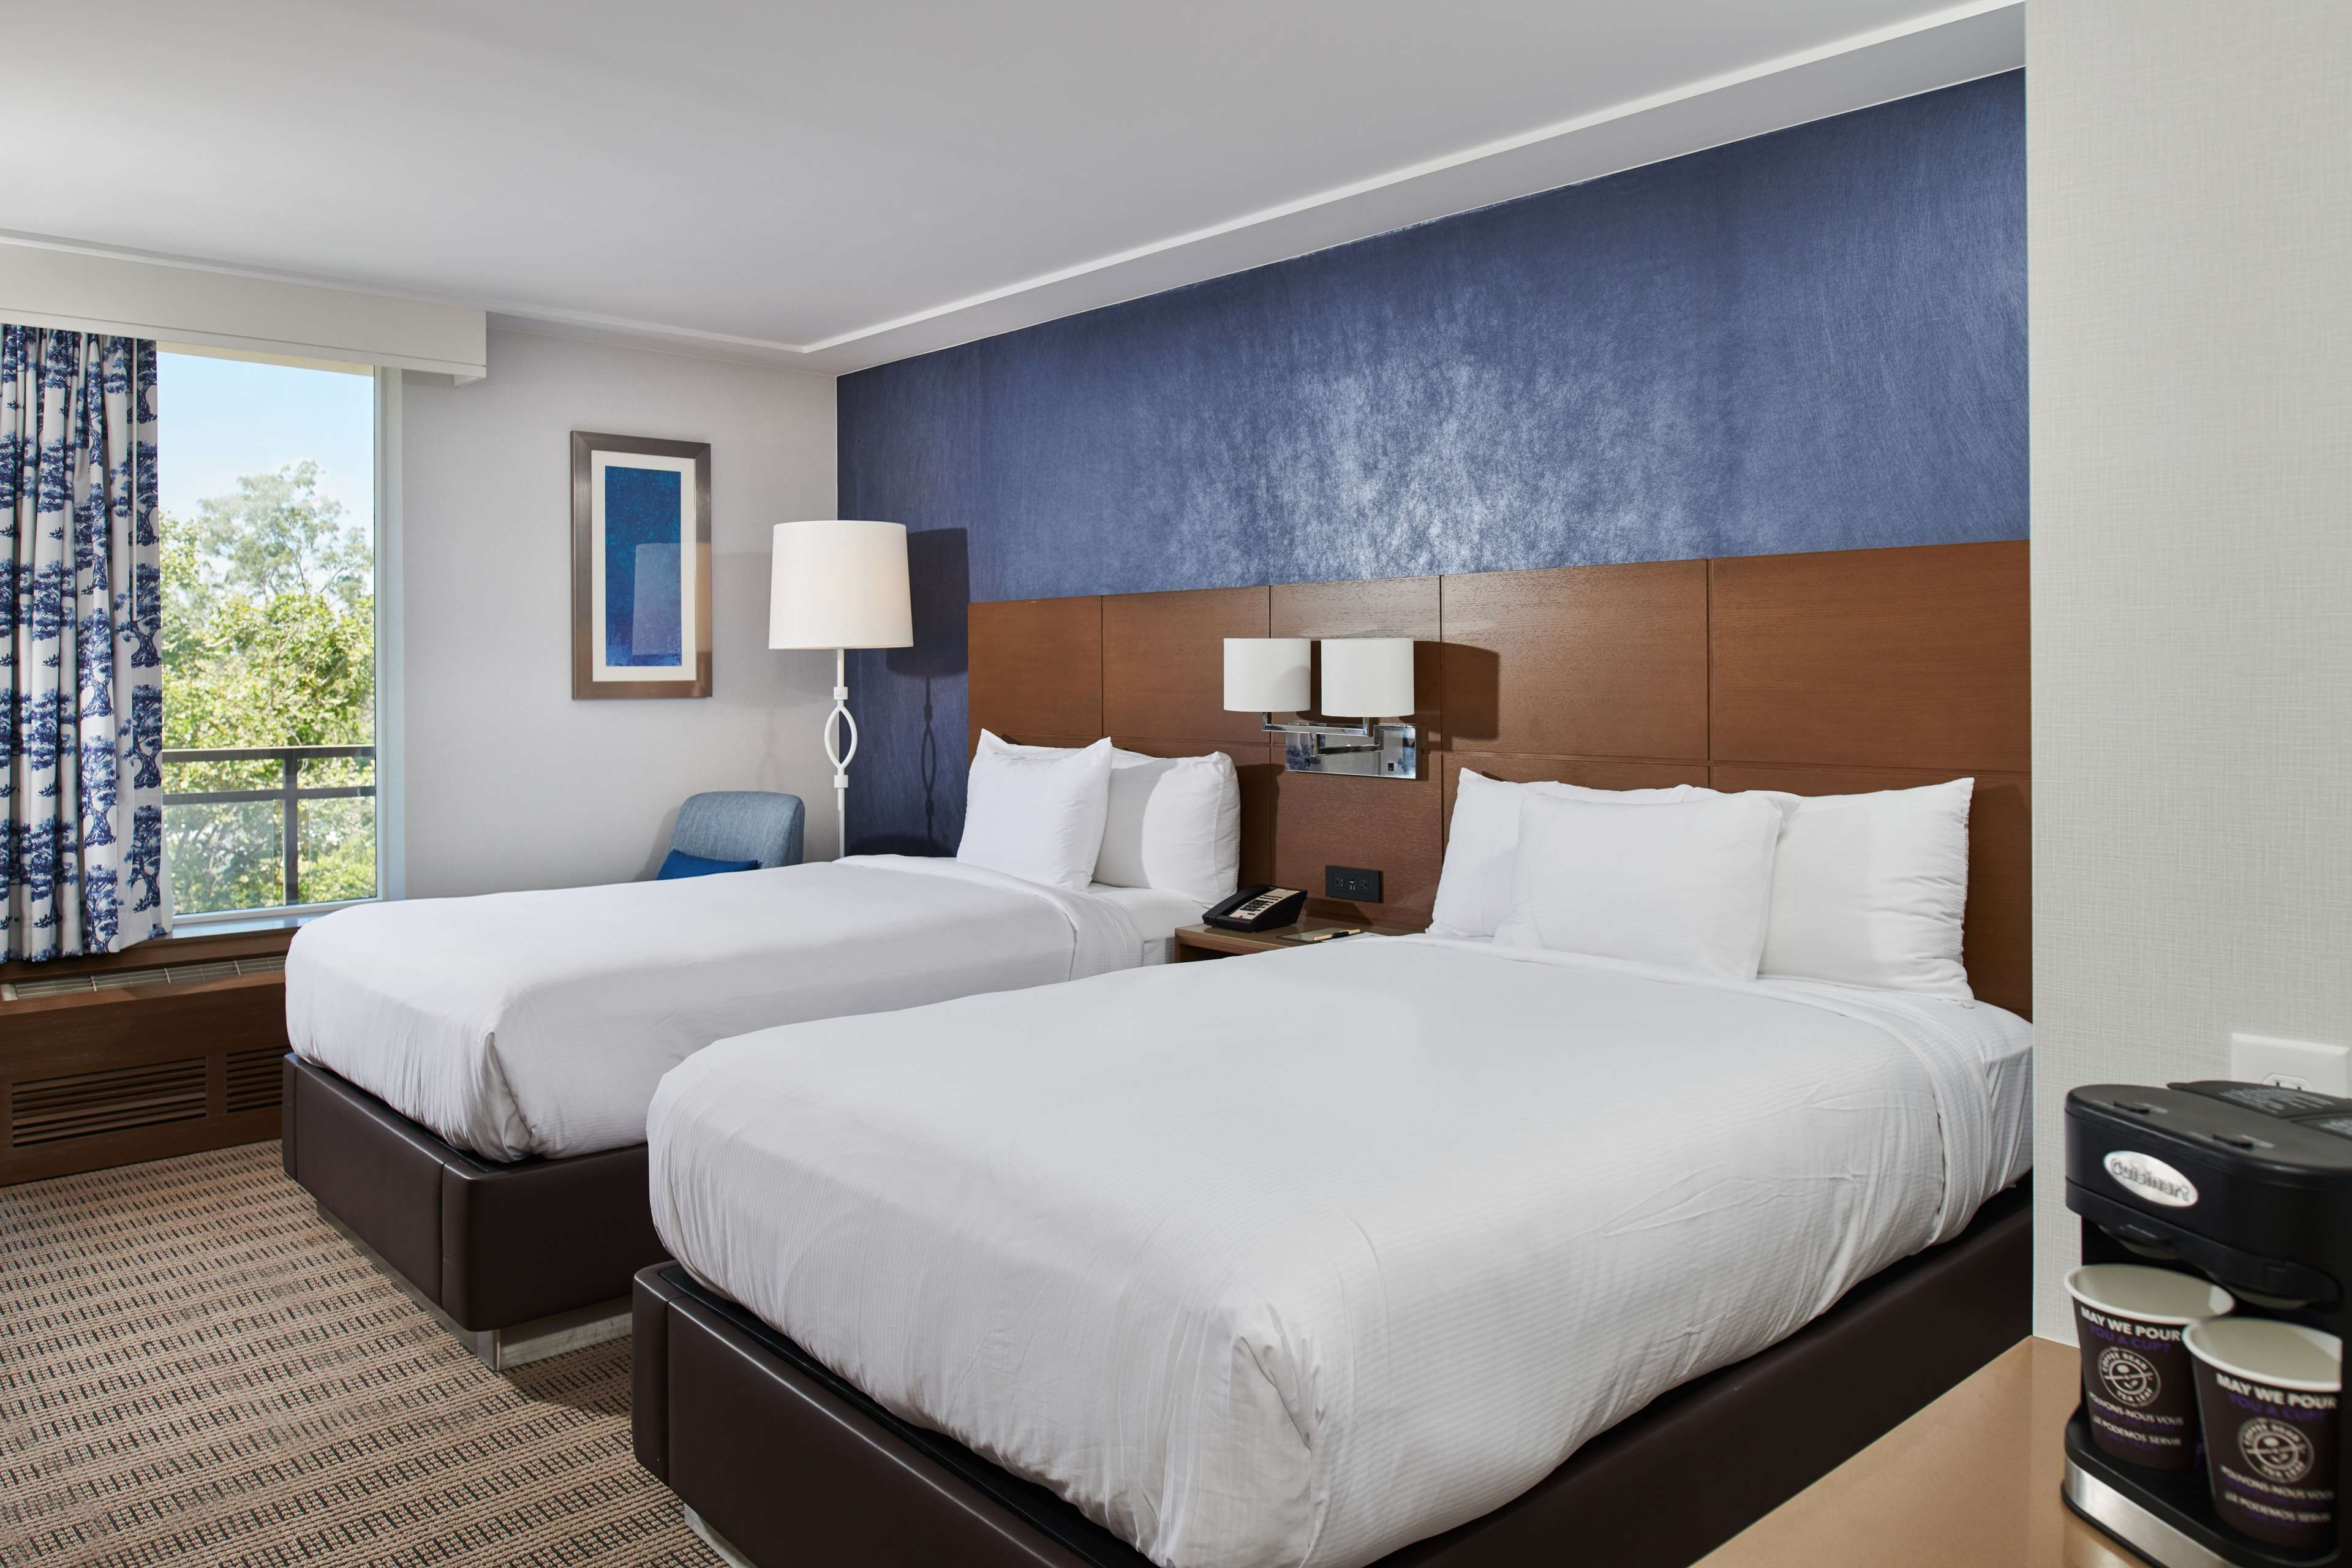 DoubleTree by Hilton Hotel Torrance - South Bay image 14